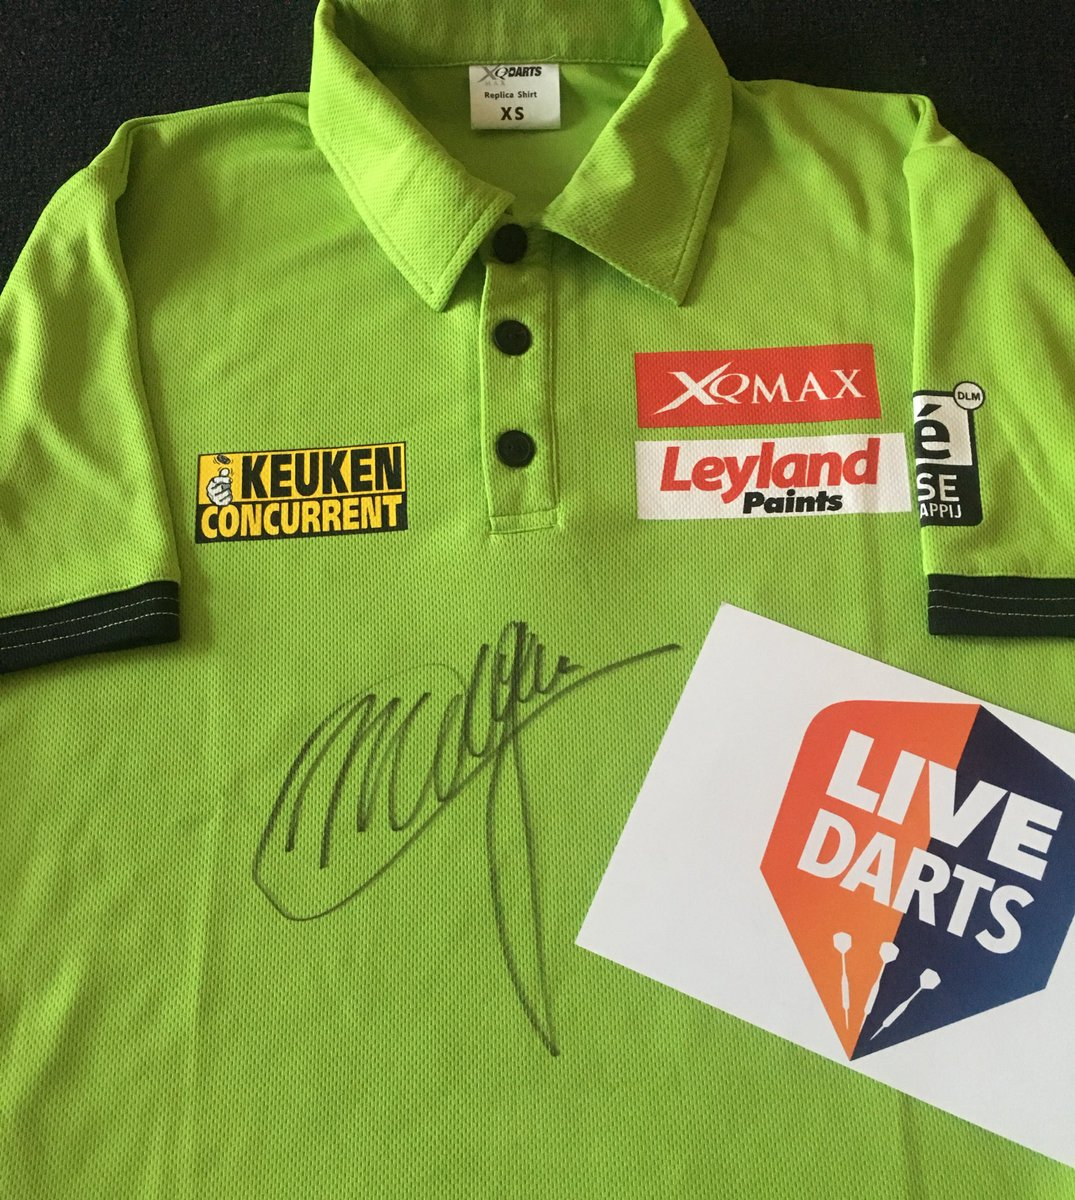 🎯 MVG SHIRT GIVE-AWAY 🎯 Simply RETWEET this and make sure you're following @livedarts for your chance to win a signed @MvG180 shirt! 👍🏻 #BVDarts #LoveTheDarts